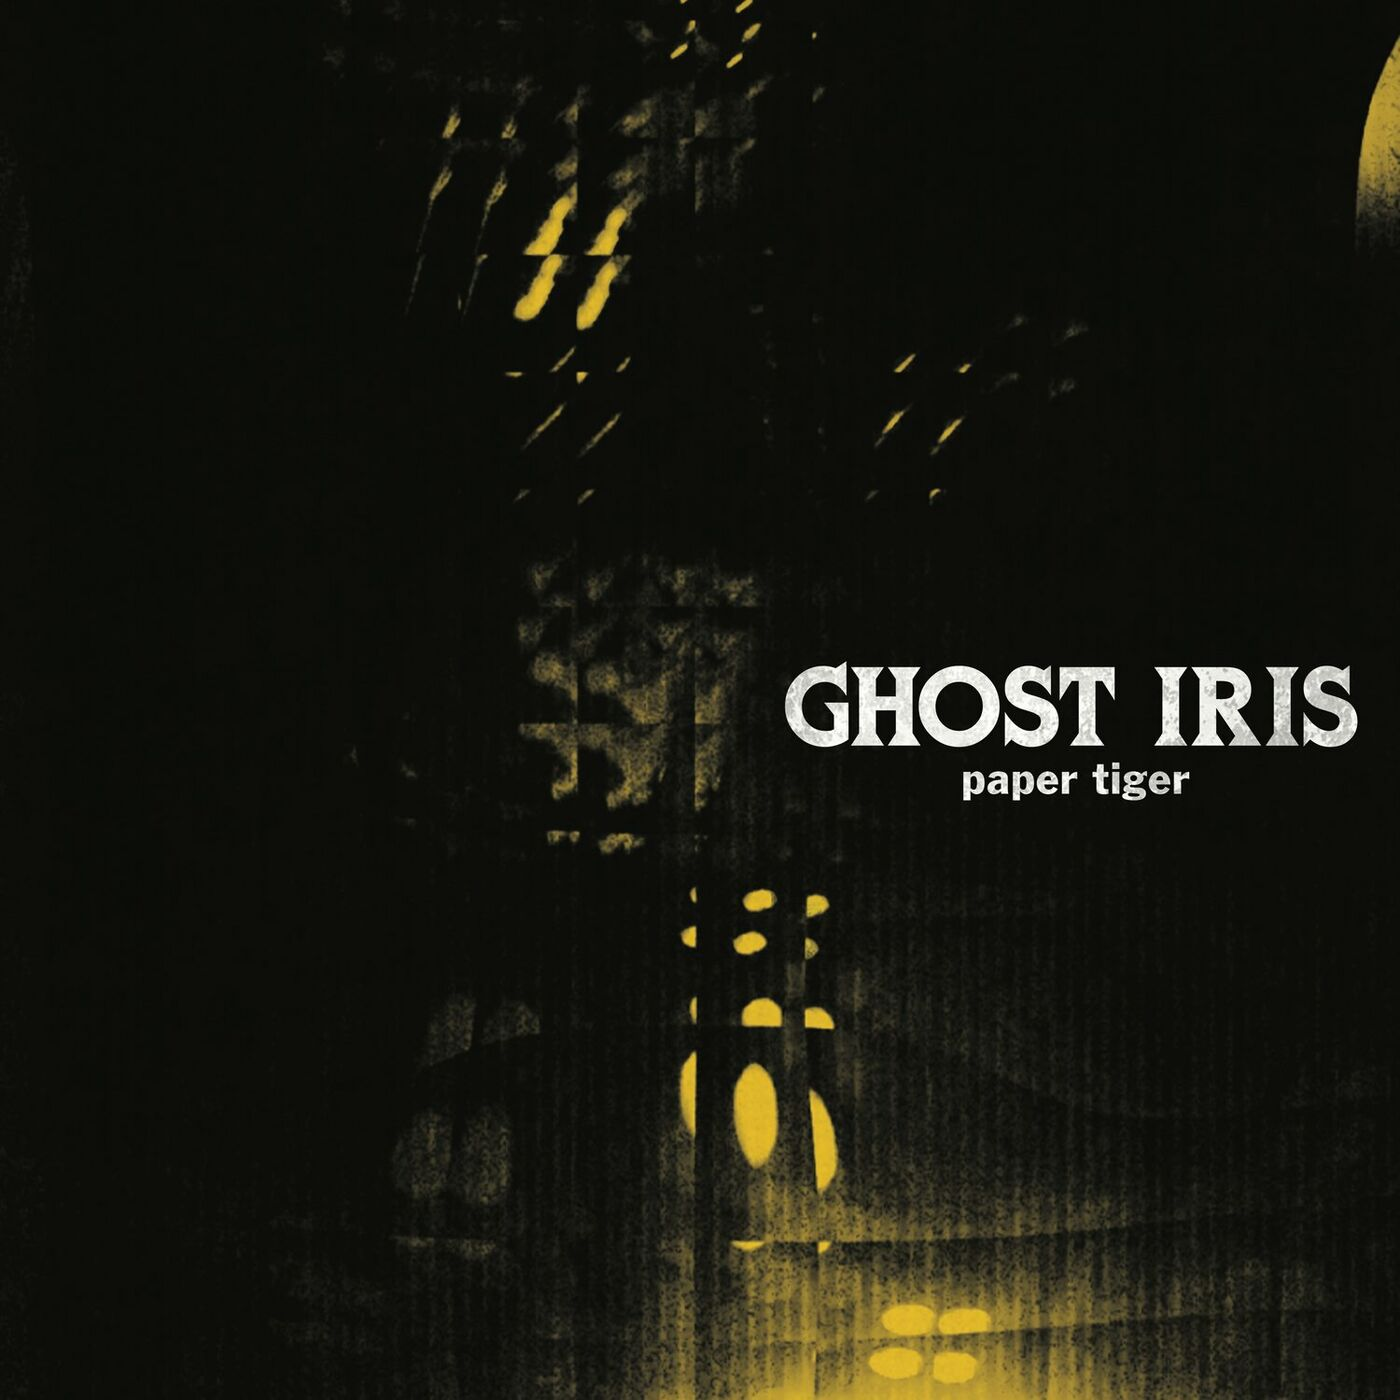 Ghost Iris - Paper Tiger [single] (2021)